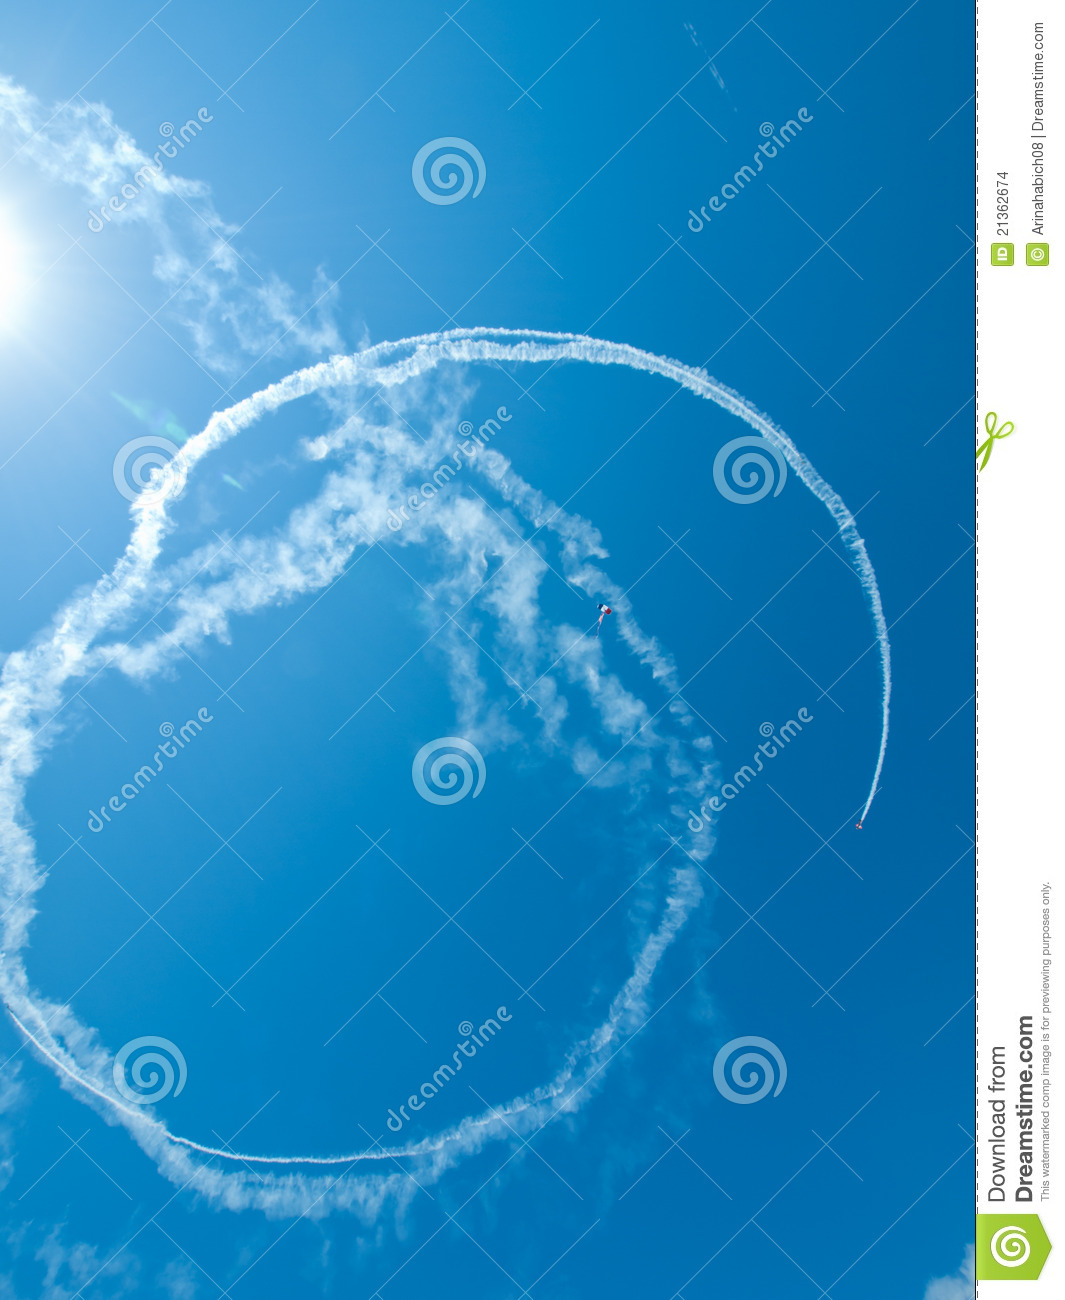 desa skywriting airplanes